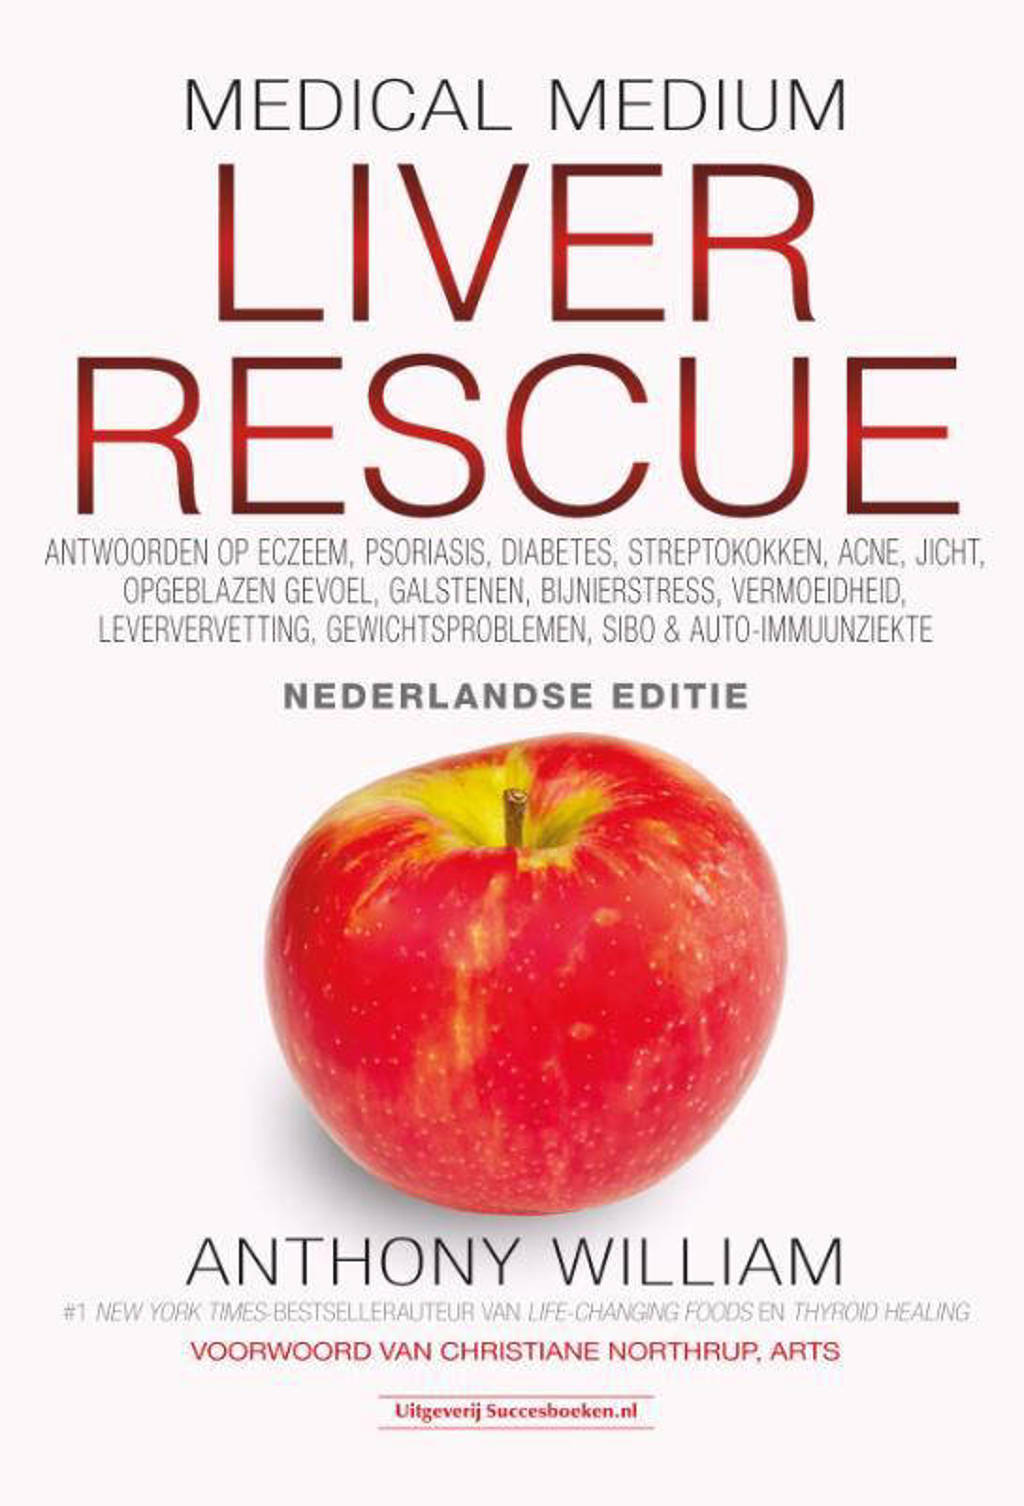 Medical Medium Liver Rescue Nederlandse Editie - Anthony William